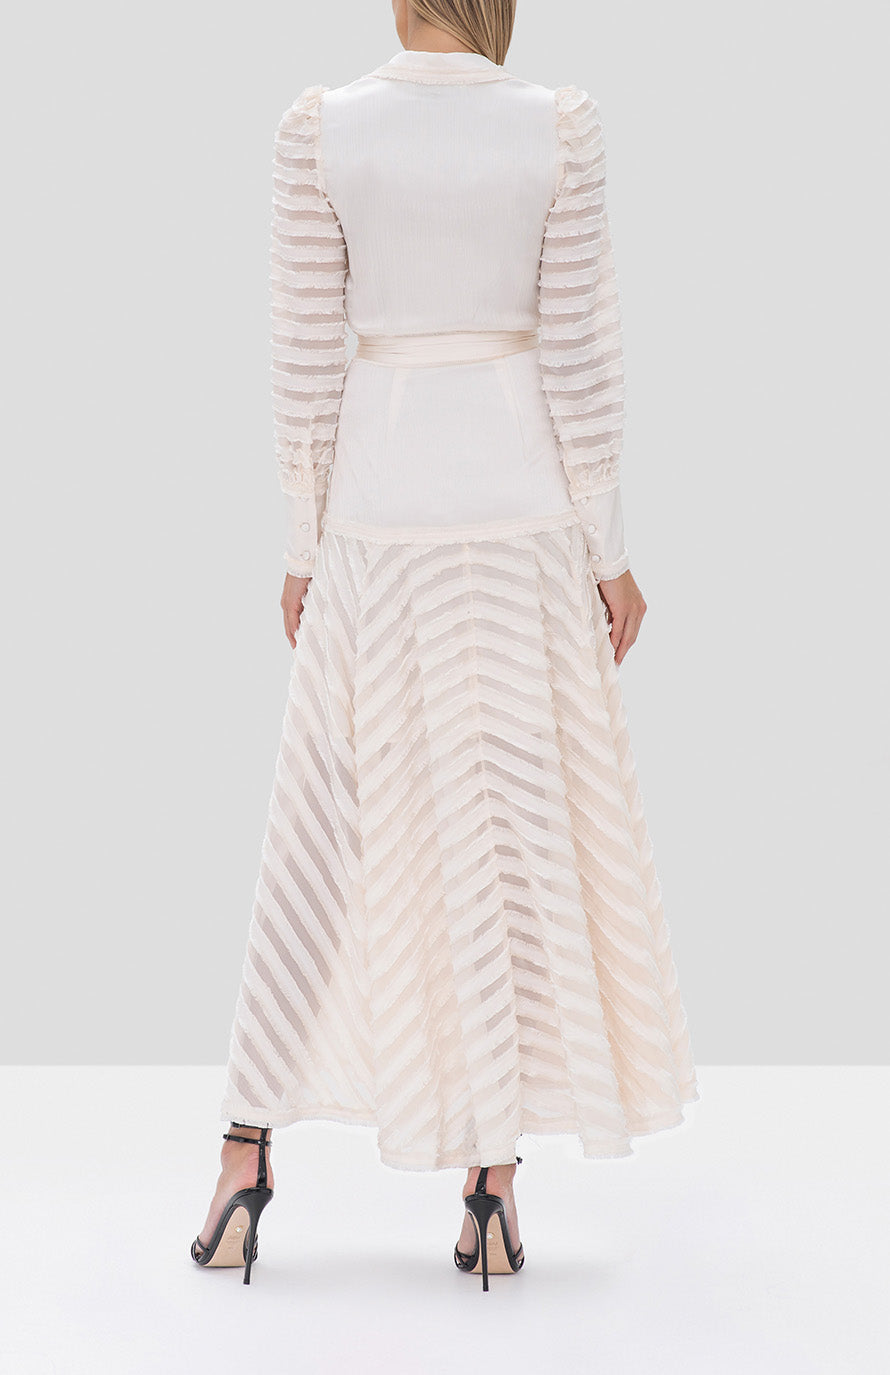 Alexis Juliska Dress in Off White - Rear View